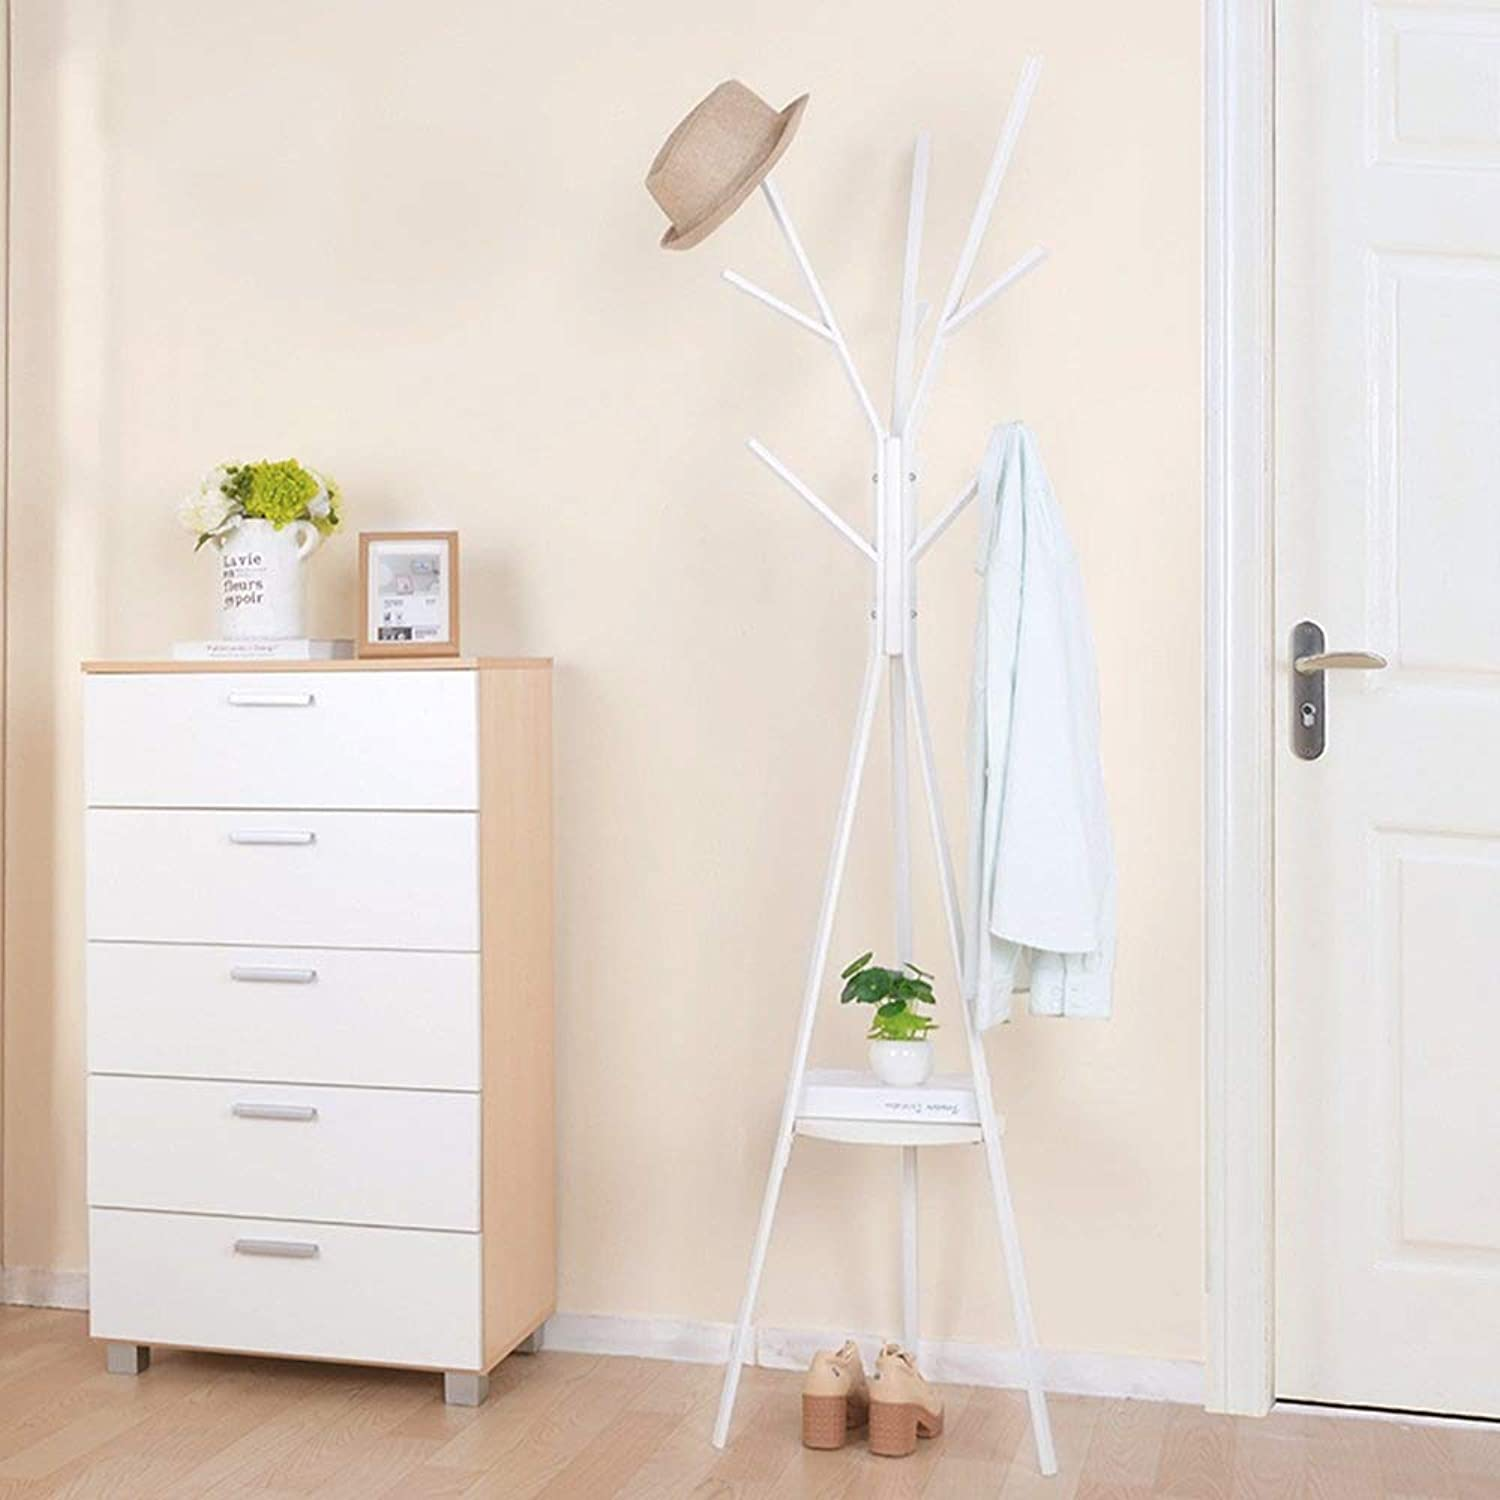 Coat Rack Floor Type Iron Hanger Simple Bedroom Hangers Household Multifunctional Wall Hanger White Haiming (color   White)